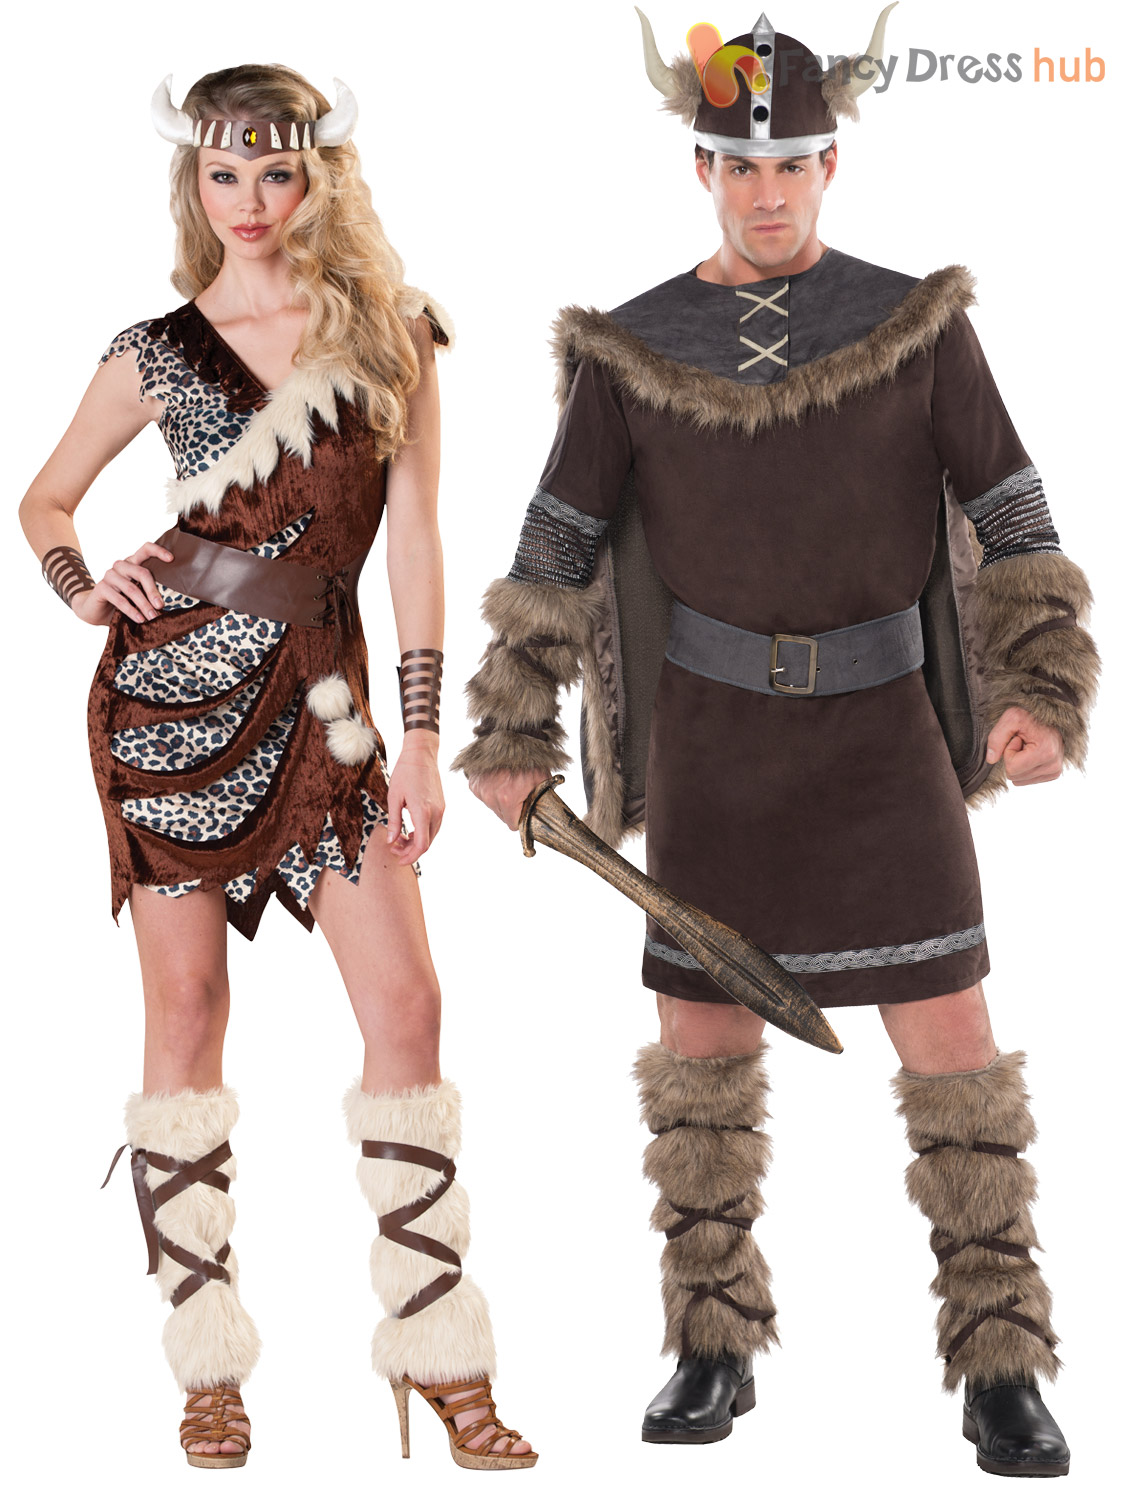 Adults Deluxe Barbarian Viking Costume Mens Warrior Fancy Dress Cavewoman Outfit | eBay